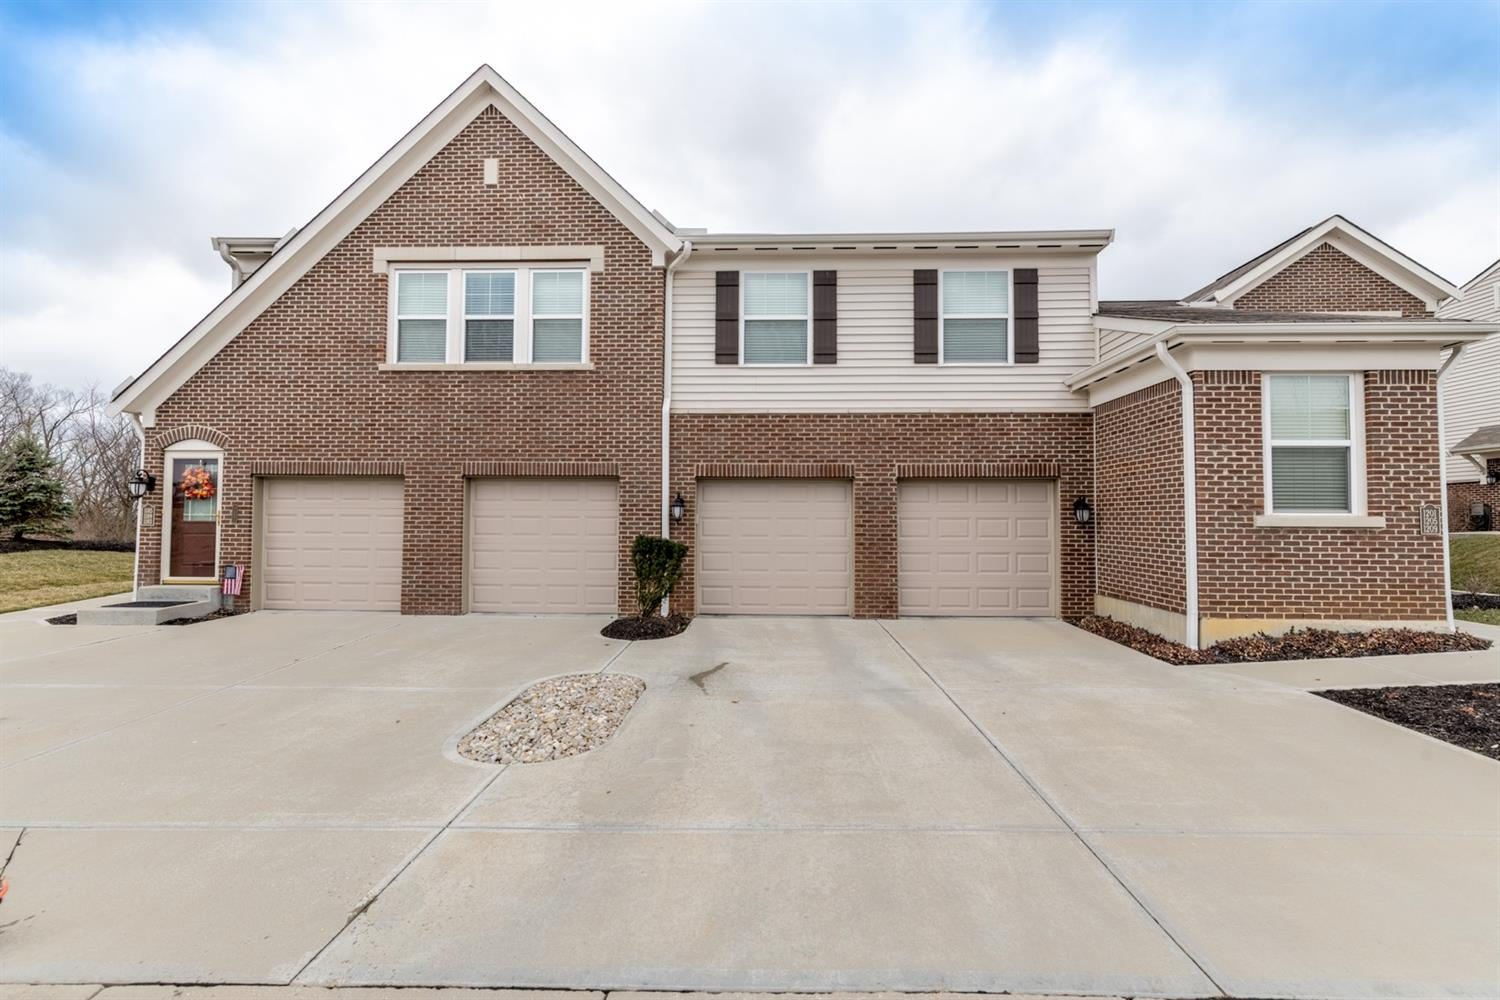 Property for sale at 1185 Double Eagle Court, Turtle Creek Twp,  OH 45036